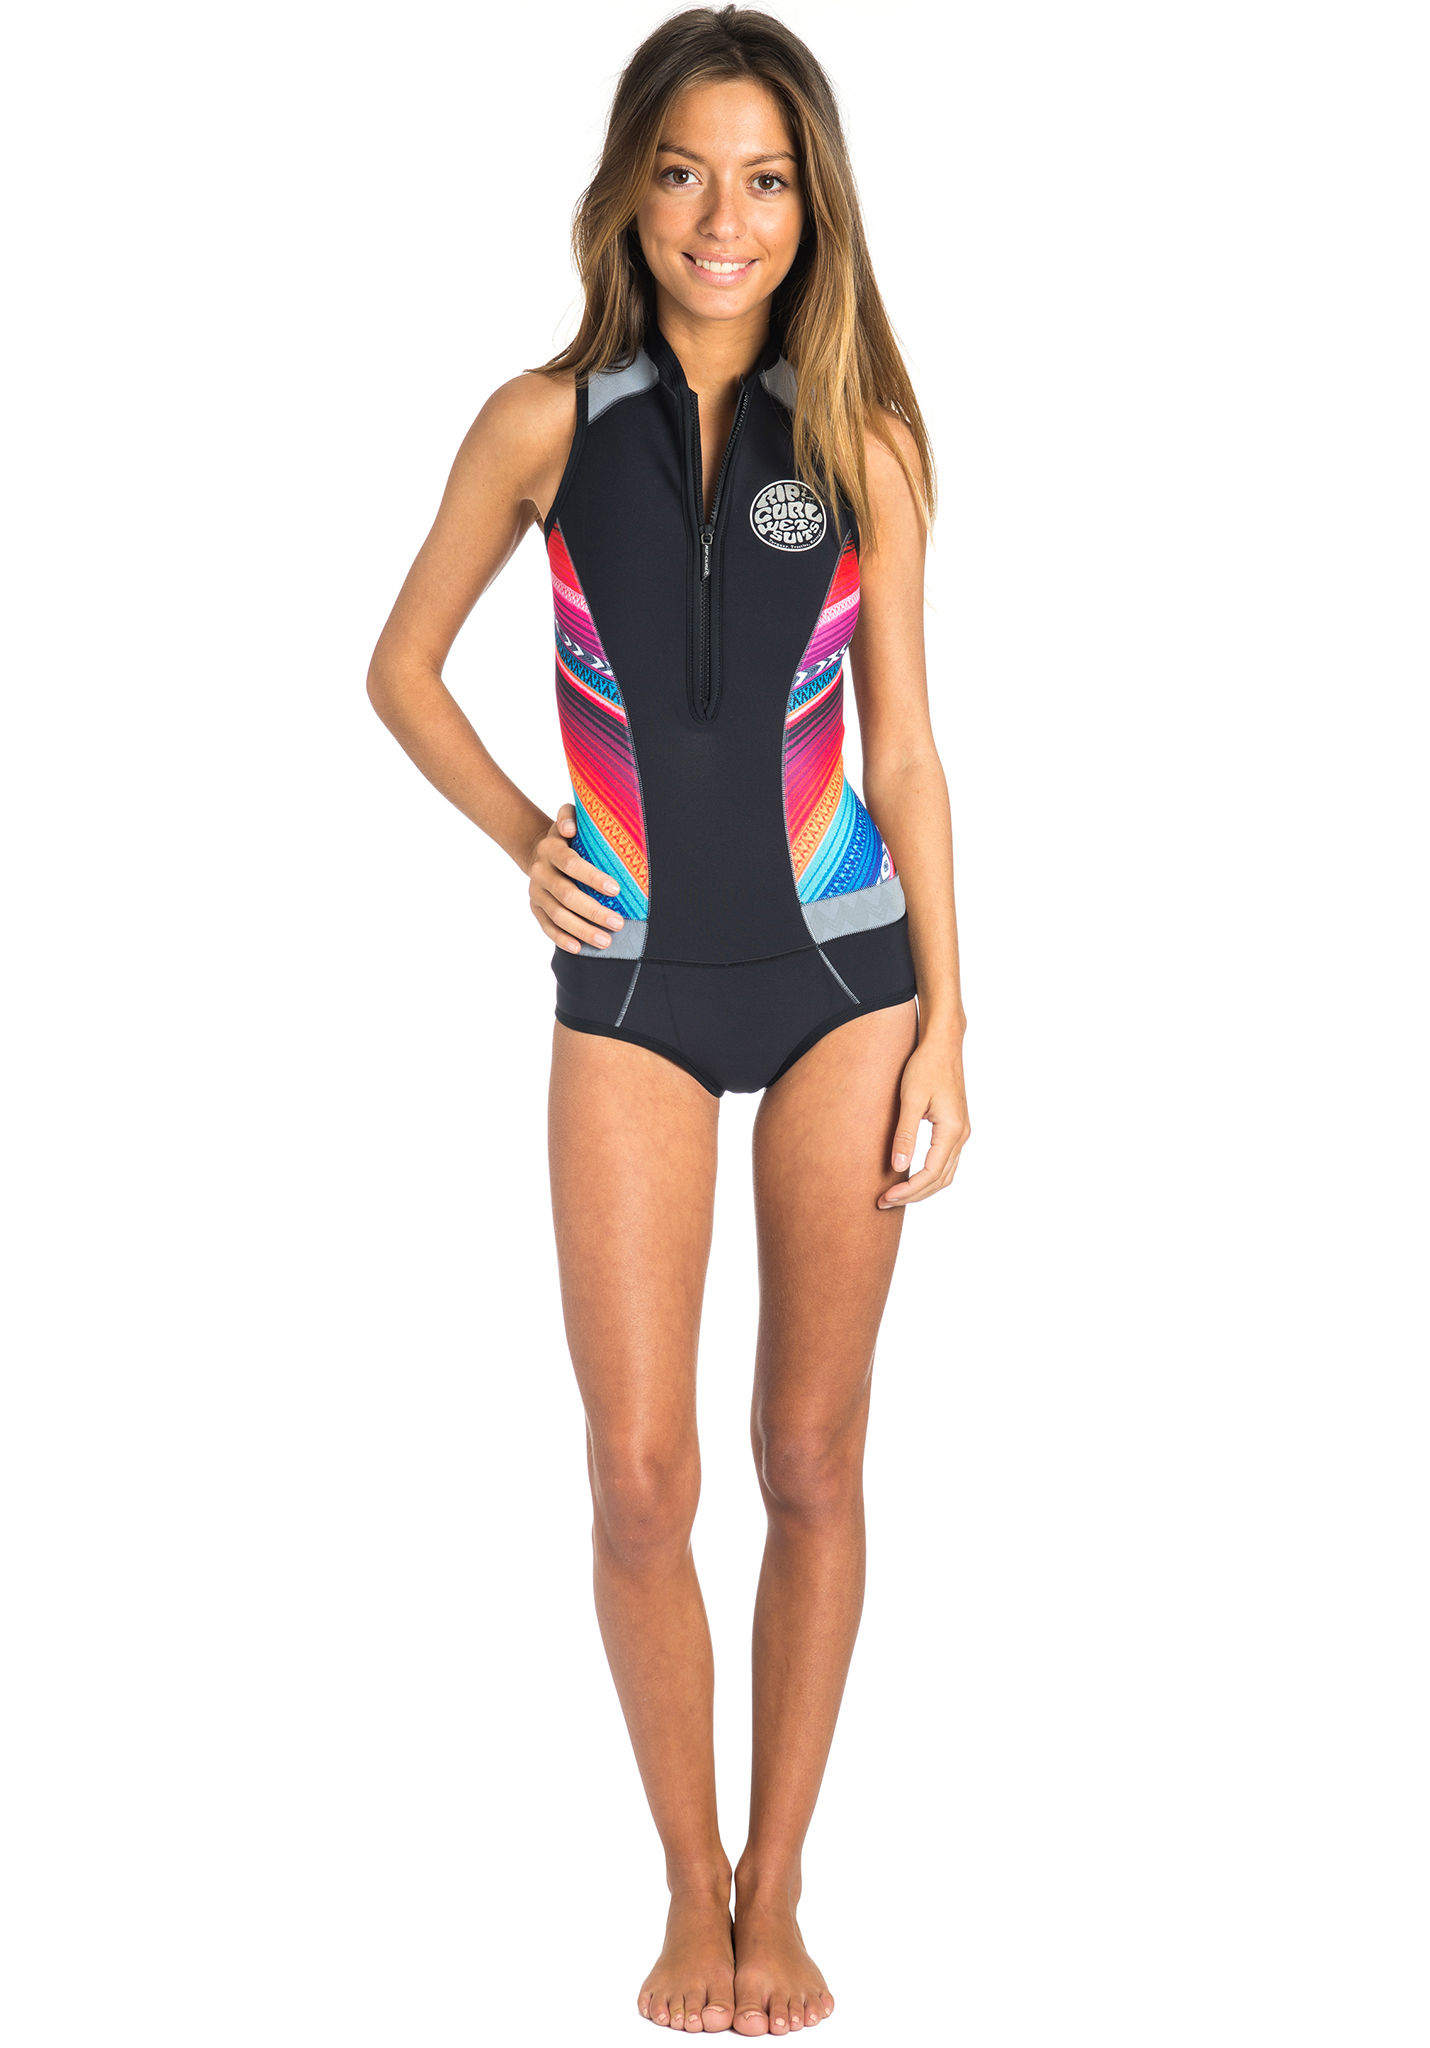 Rip Curl G Bomb S L Bikini Spring - Wetsuit for Women - Black - Planet  Sports af22b1d79